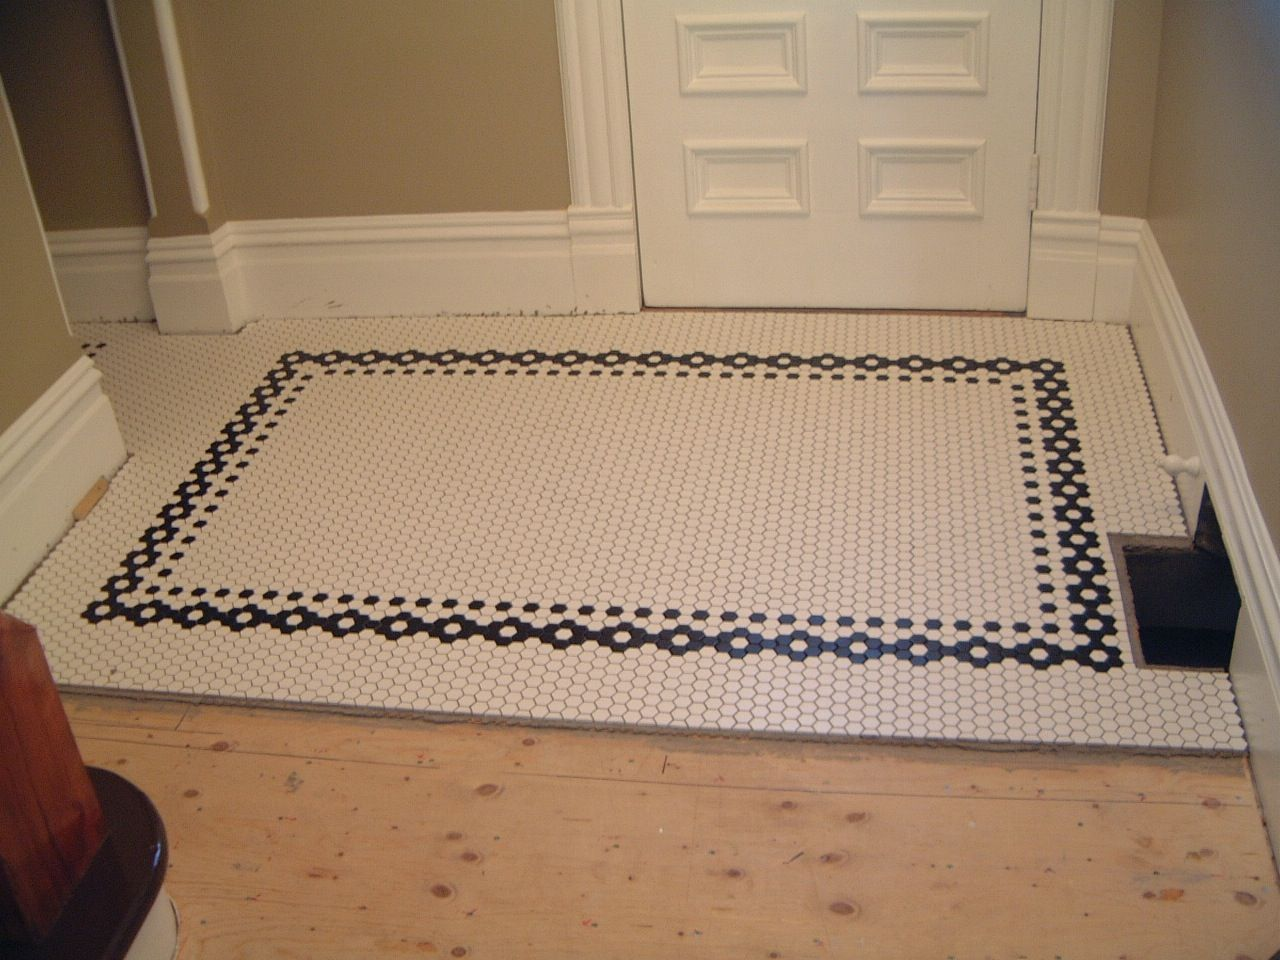 Creative tile flooring patterns small white hex tile with black design ideas inspiring bathroom flooring design ideas using white hexagon floor tile pattern and white wood bathroom door cool flooring design ideas using dailygadgetfo Images